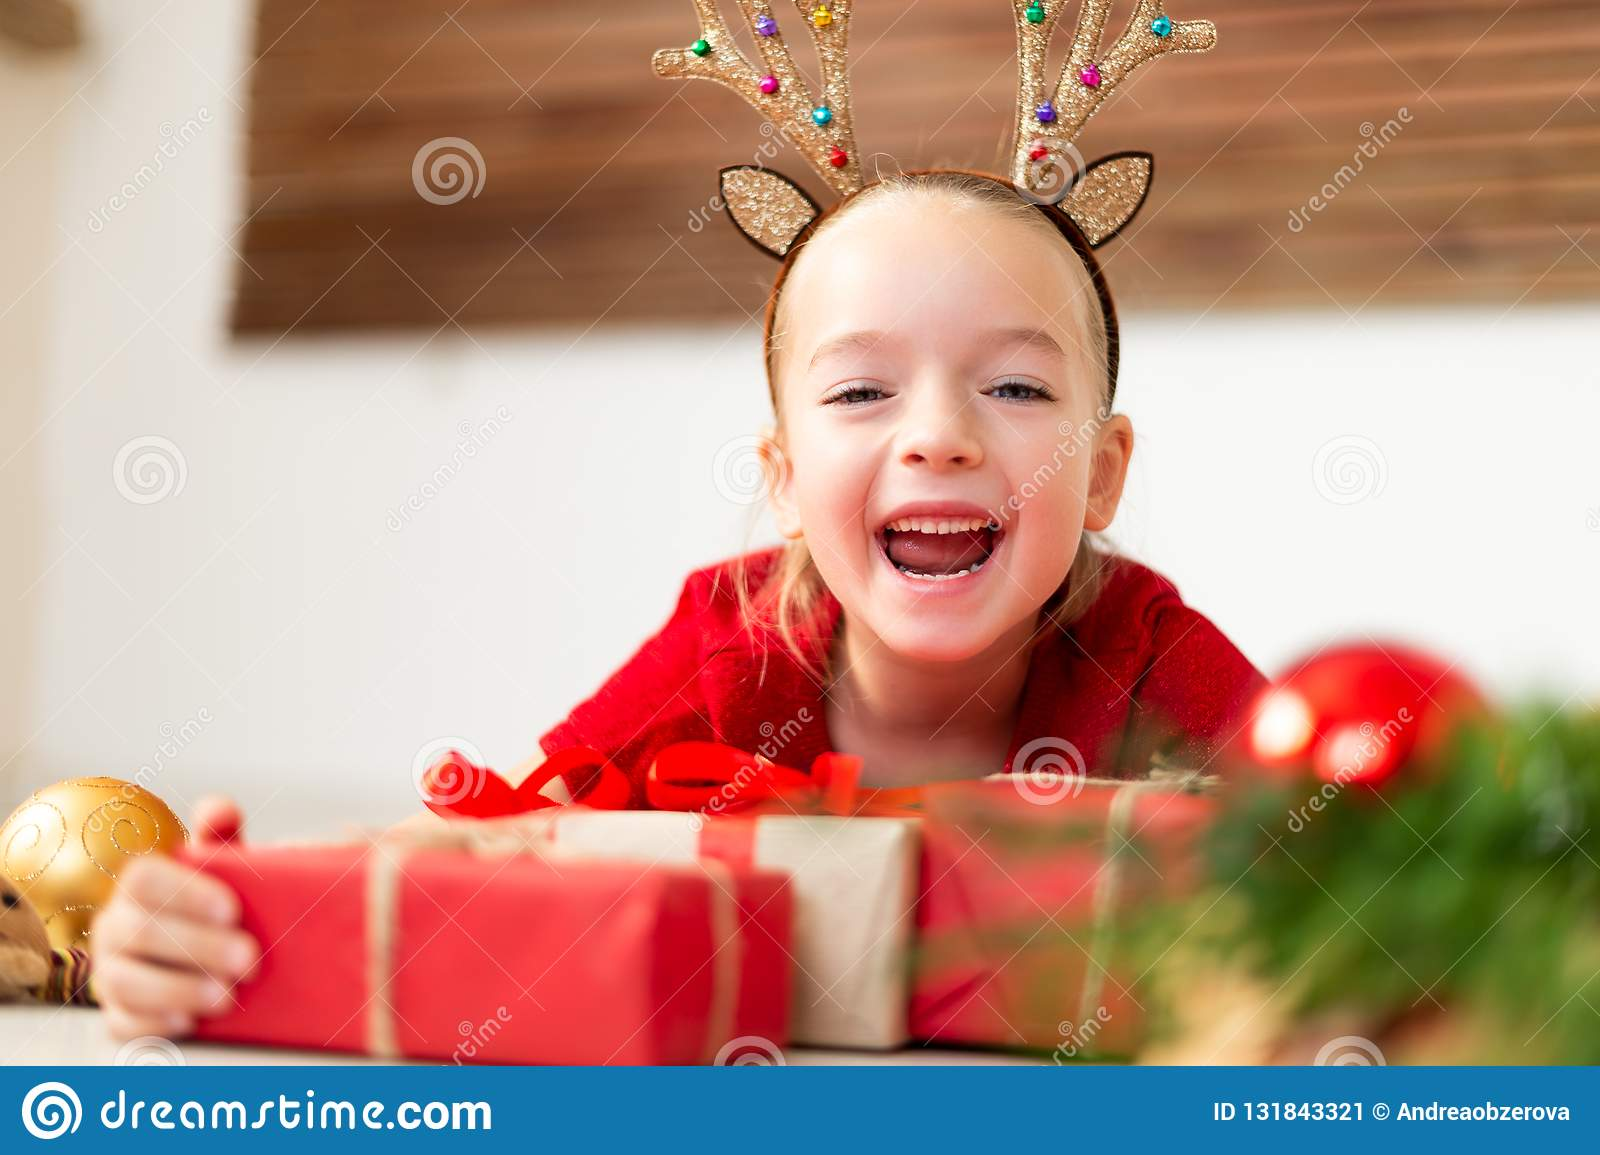 Cute young girl wearing costume reindeer antlers lying on the floor, surrounded by many christmas presents, screaming with joy.